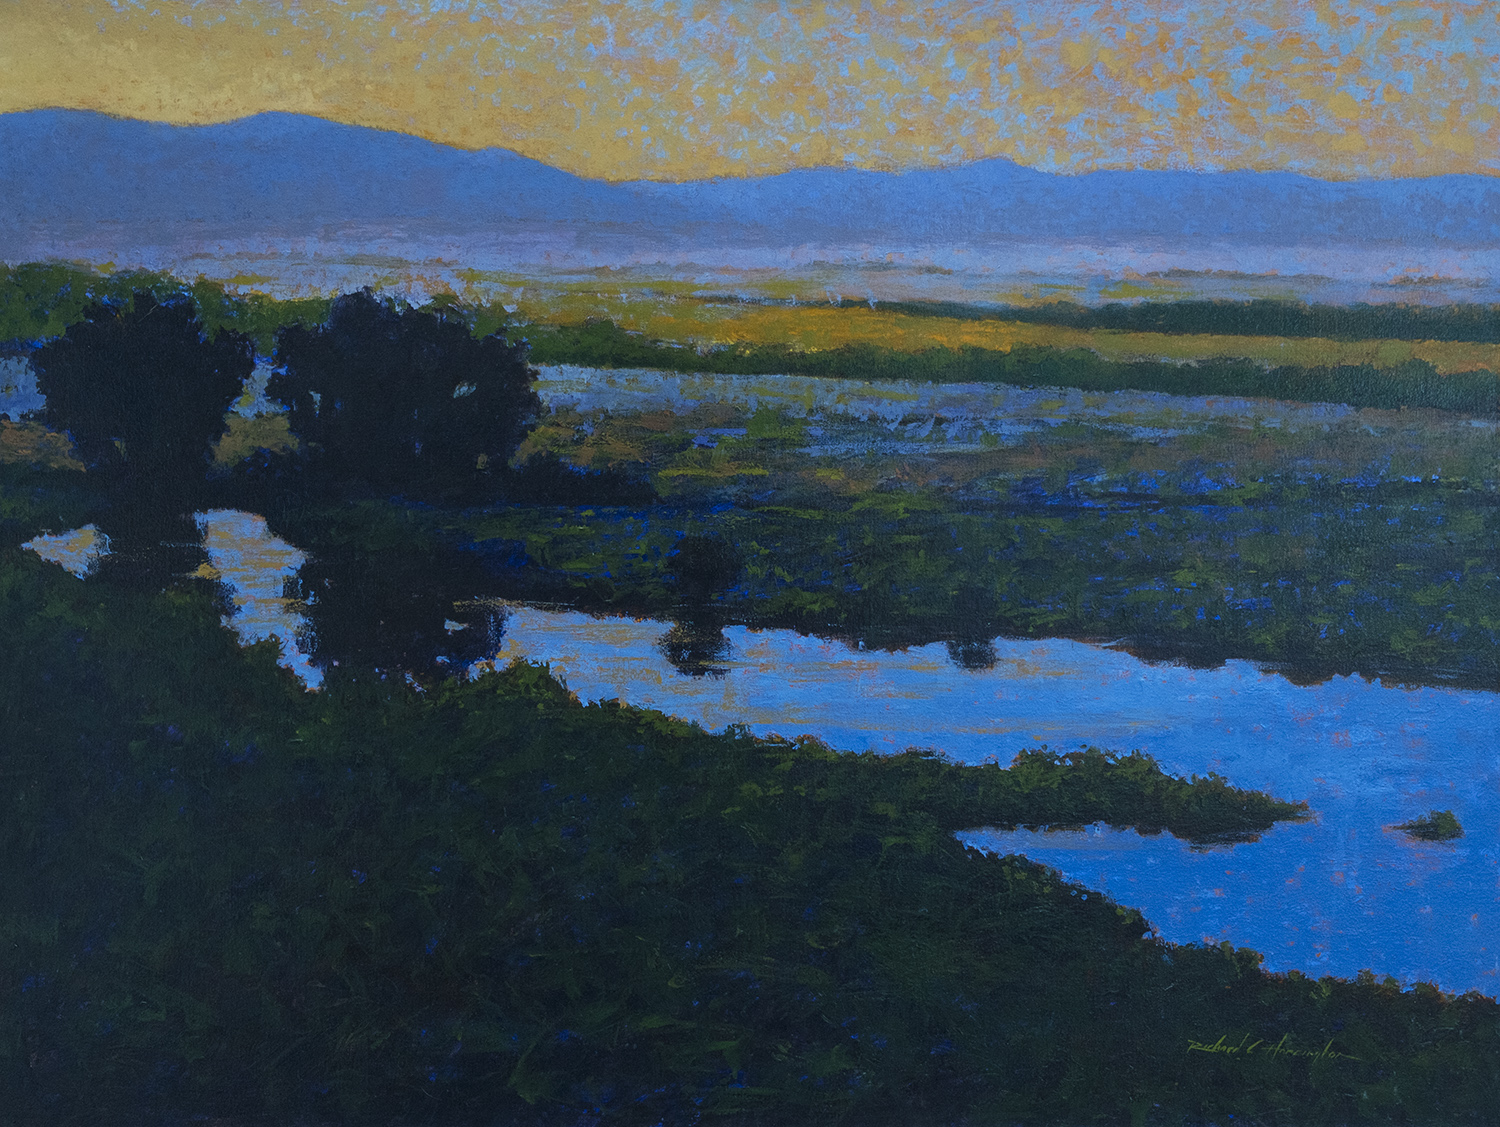 Silver Creek V, 42 x 56 inches, oil on canvas. Available through the artist.